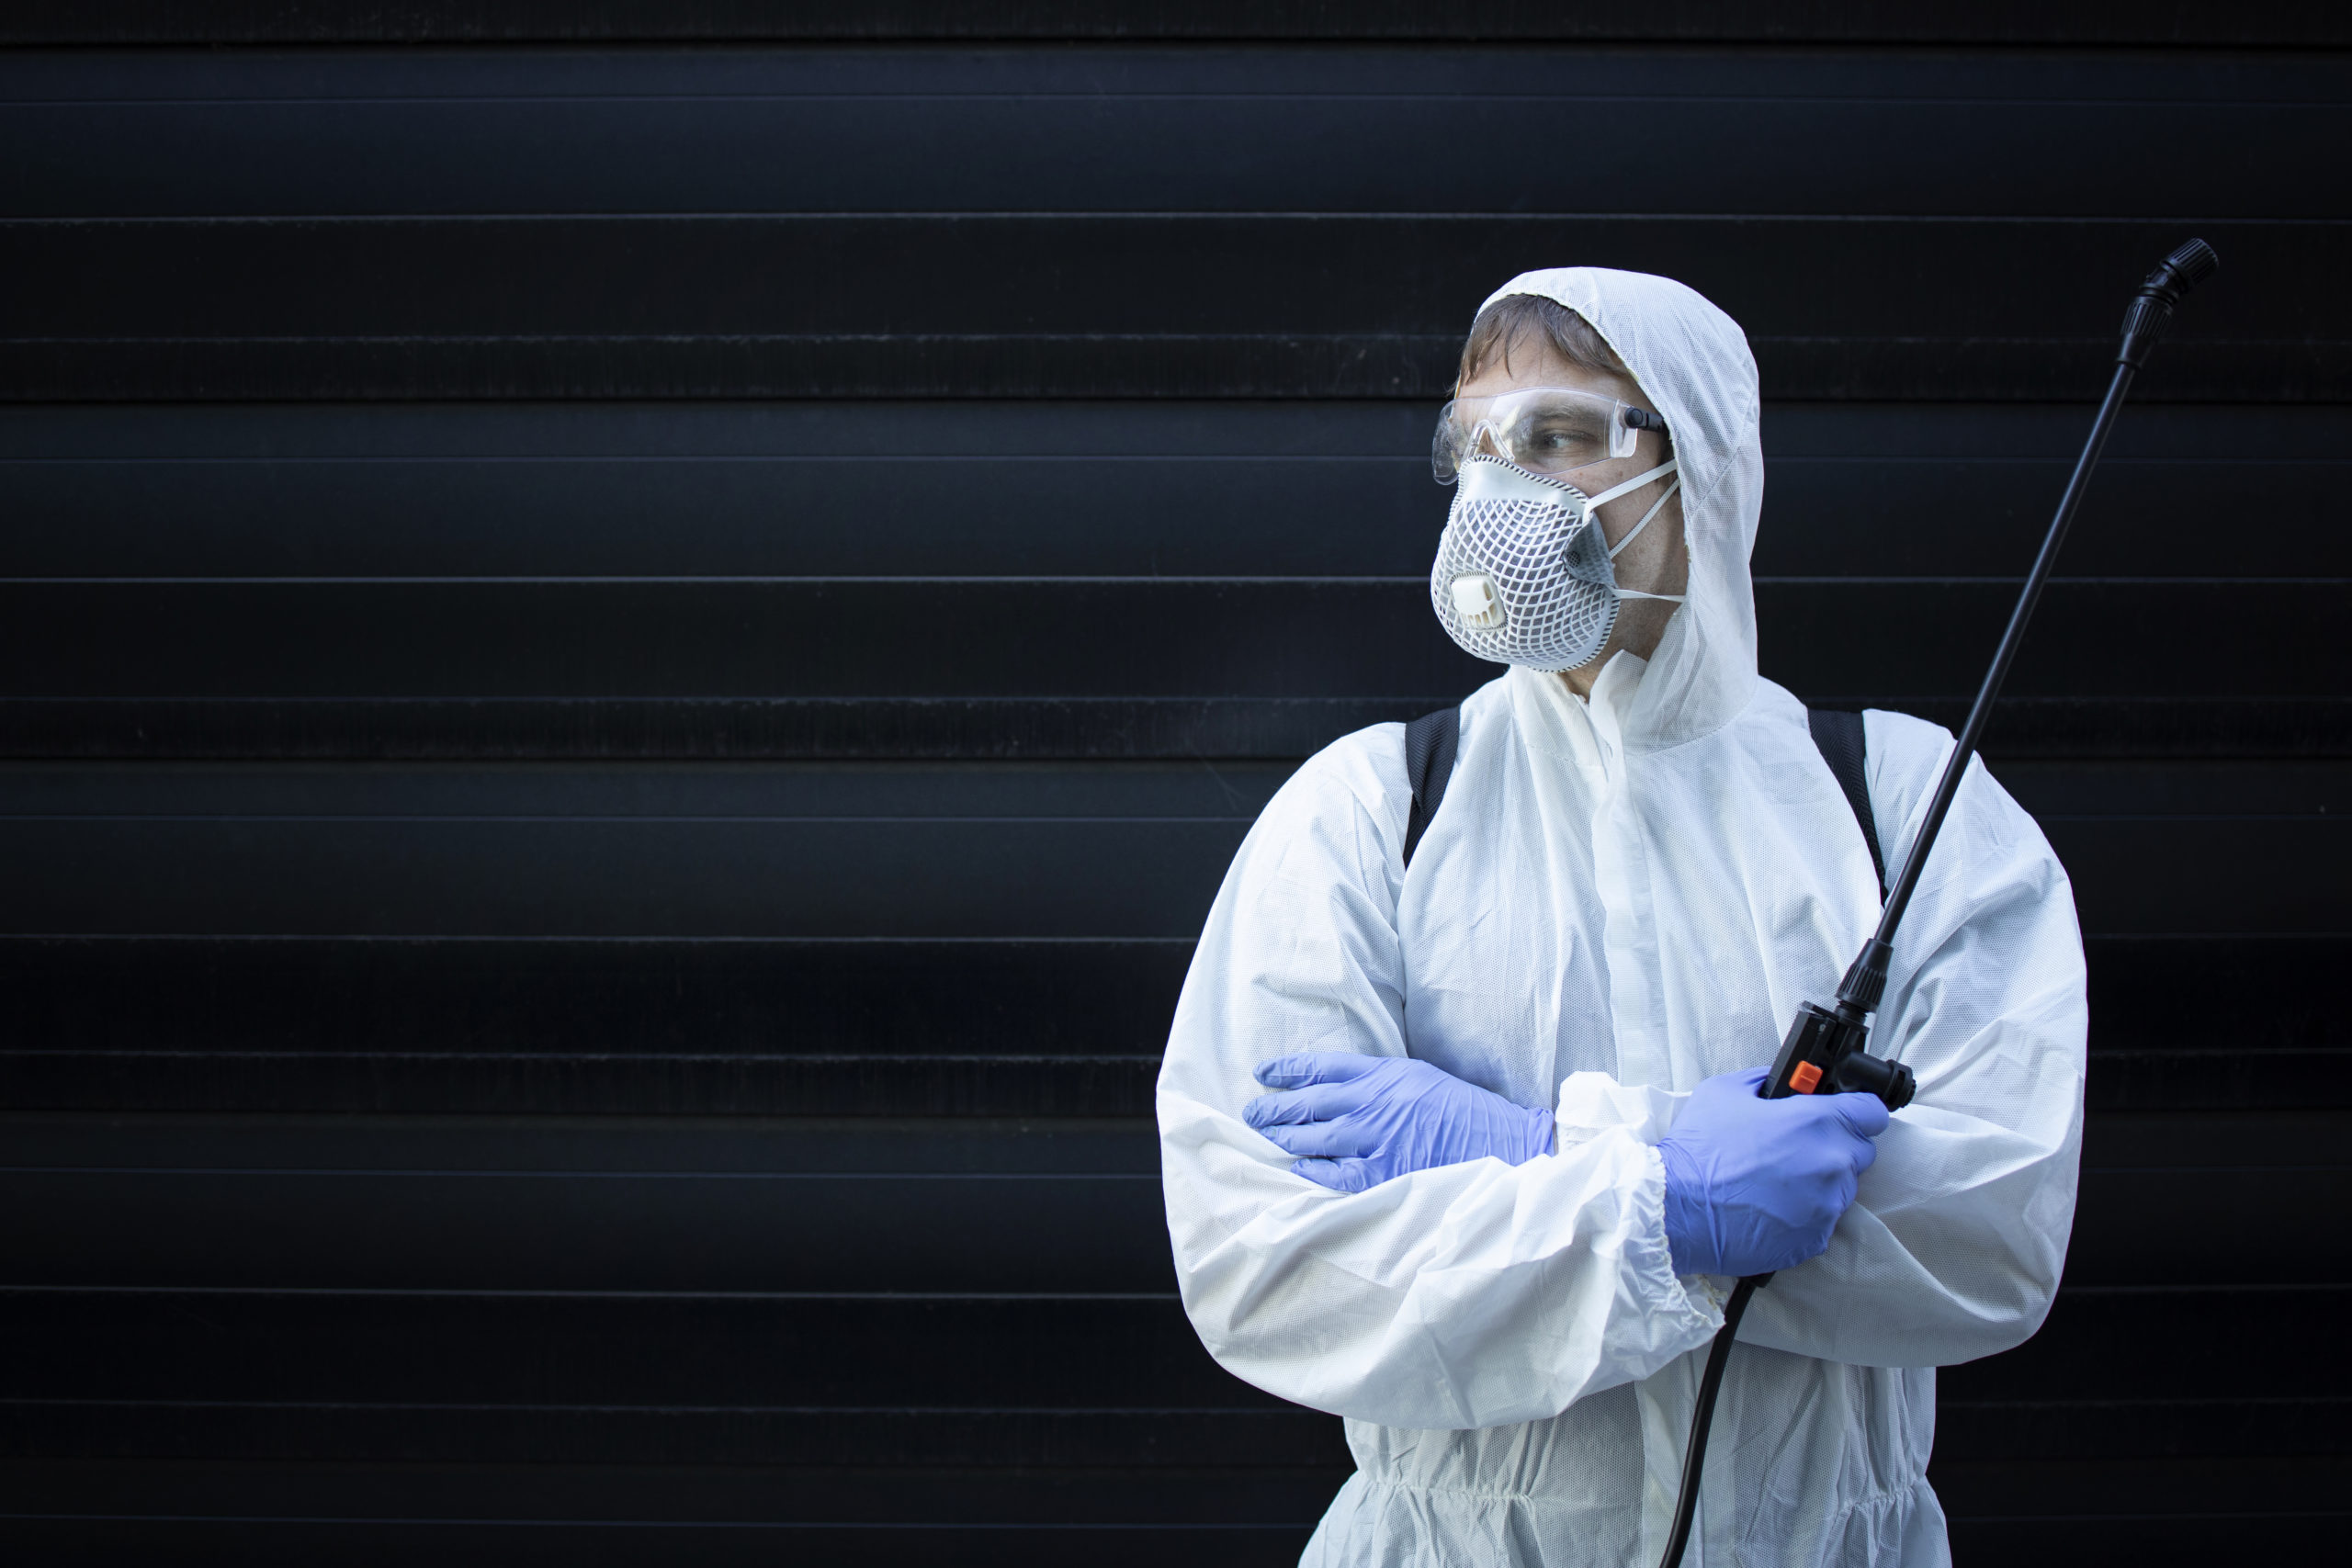 Portrait of professional exterminator holding sprayer with chemicals for pest control.